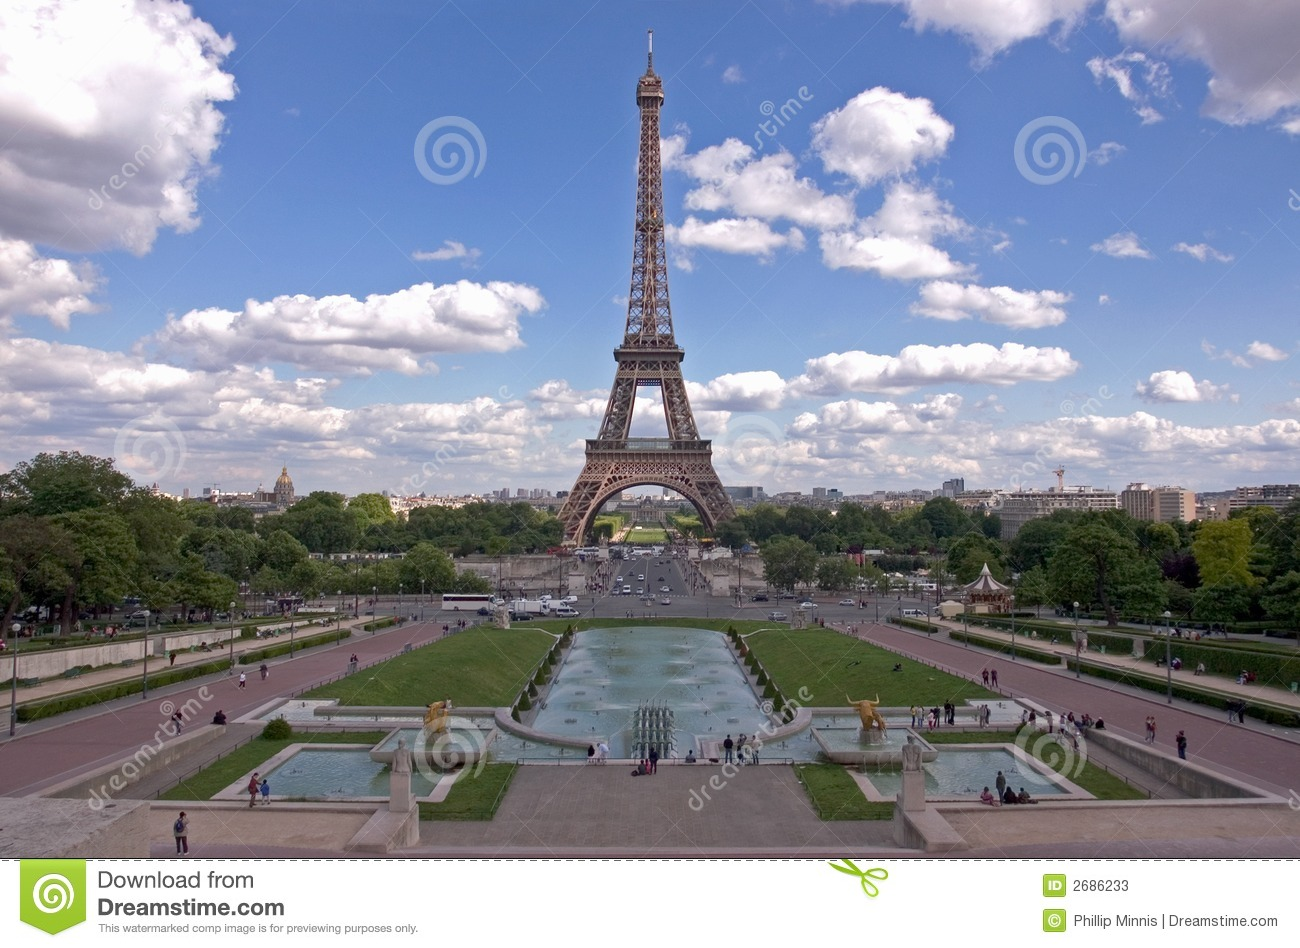 La tour eiffel paris stock photos image 2686233 - Tour eiffel image ...